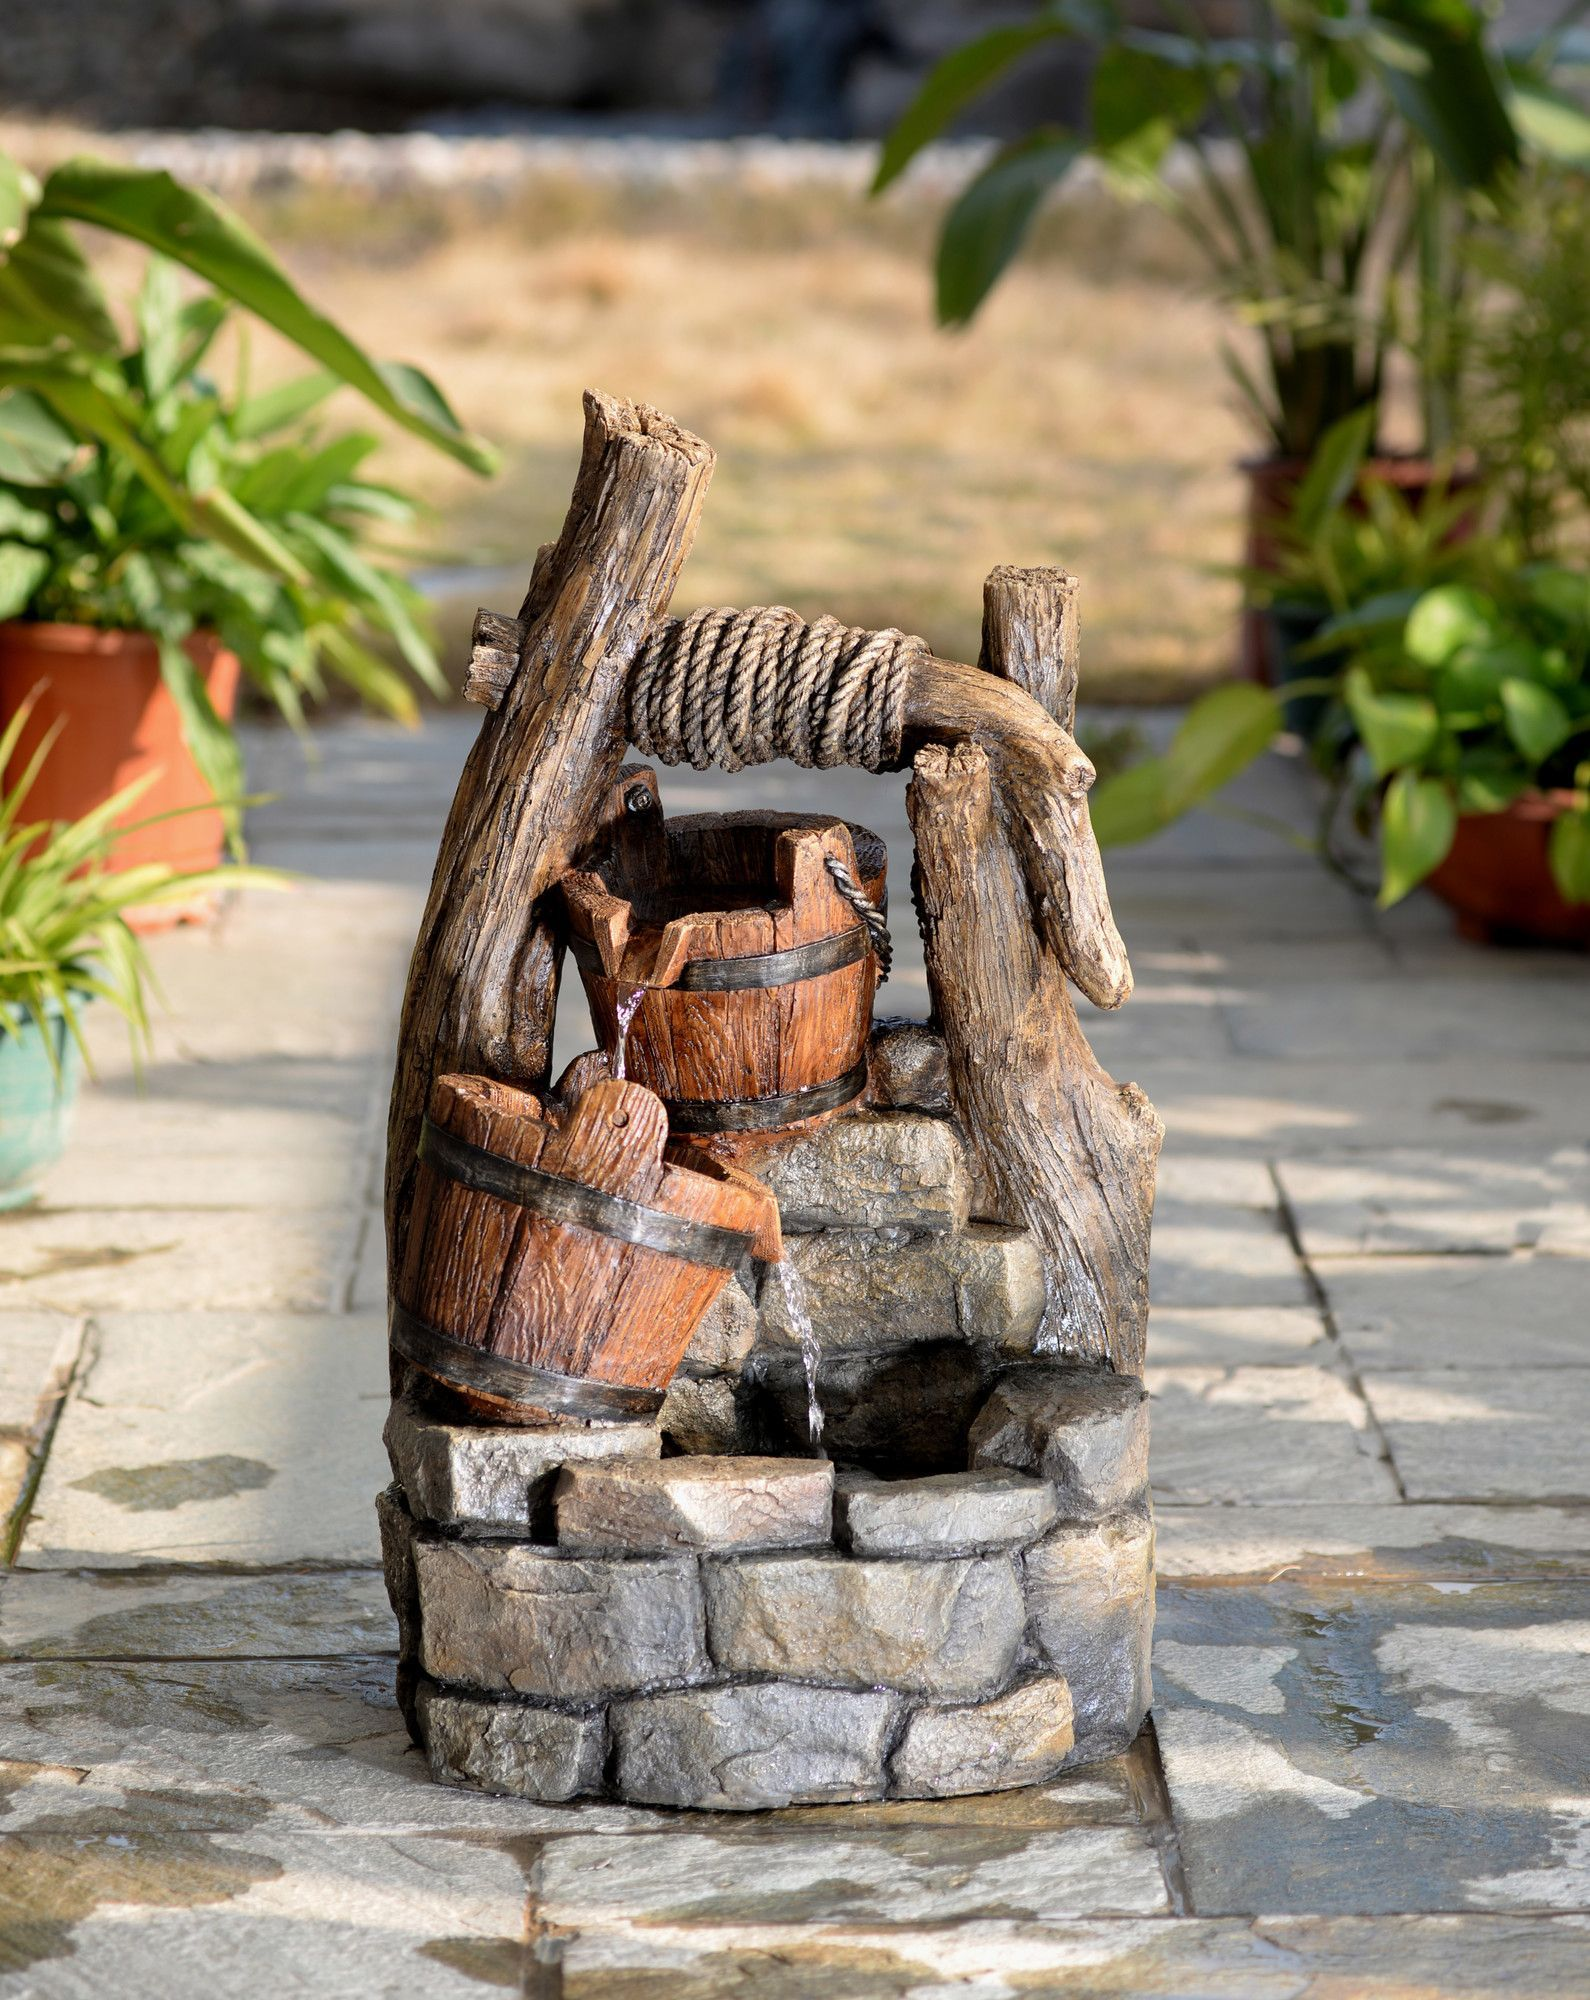 Jeco Tree Trunk And Pots Indoor/Outdoor Fountain   The Rustic Jeco Tree  Trunk And Pots Indoor/Outdoor Fountain Creates A Rugged, Outdoorsy Feel No  Matter ...